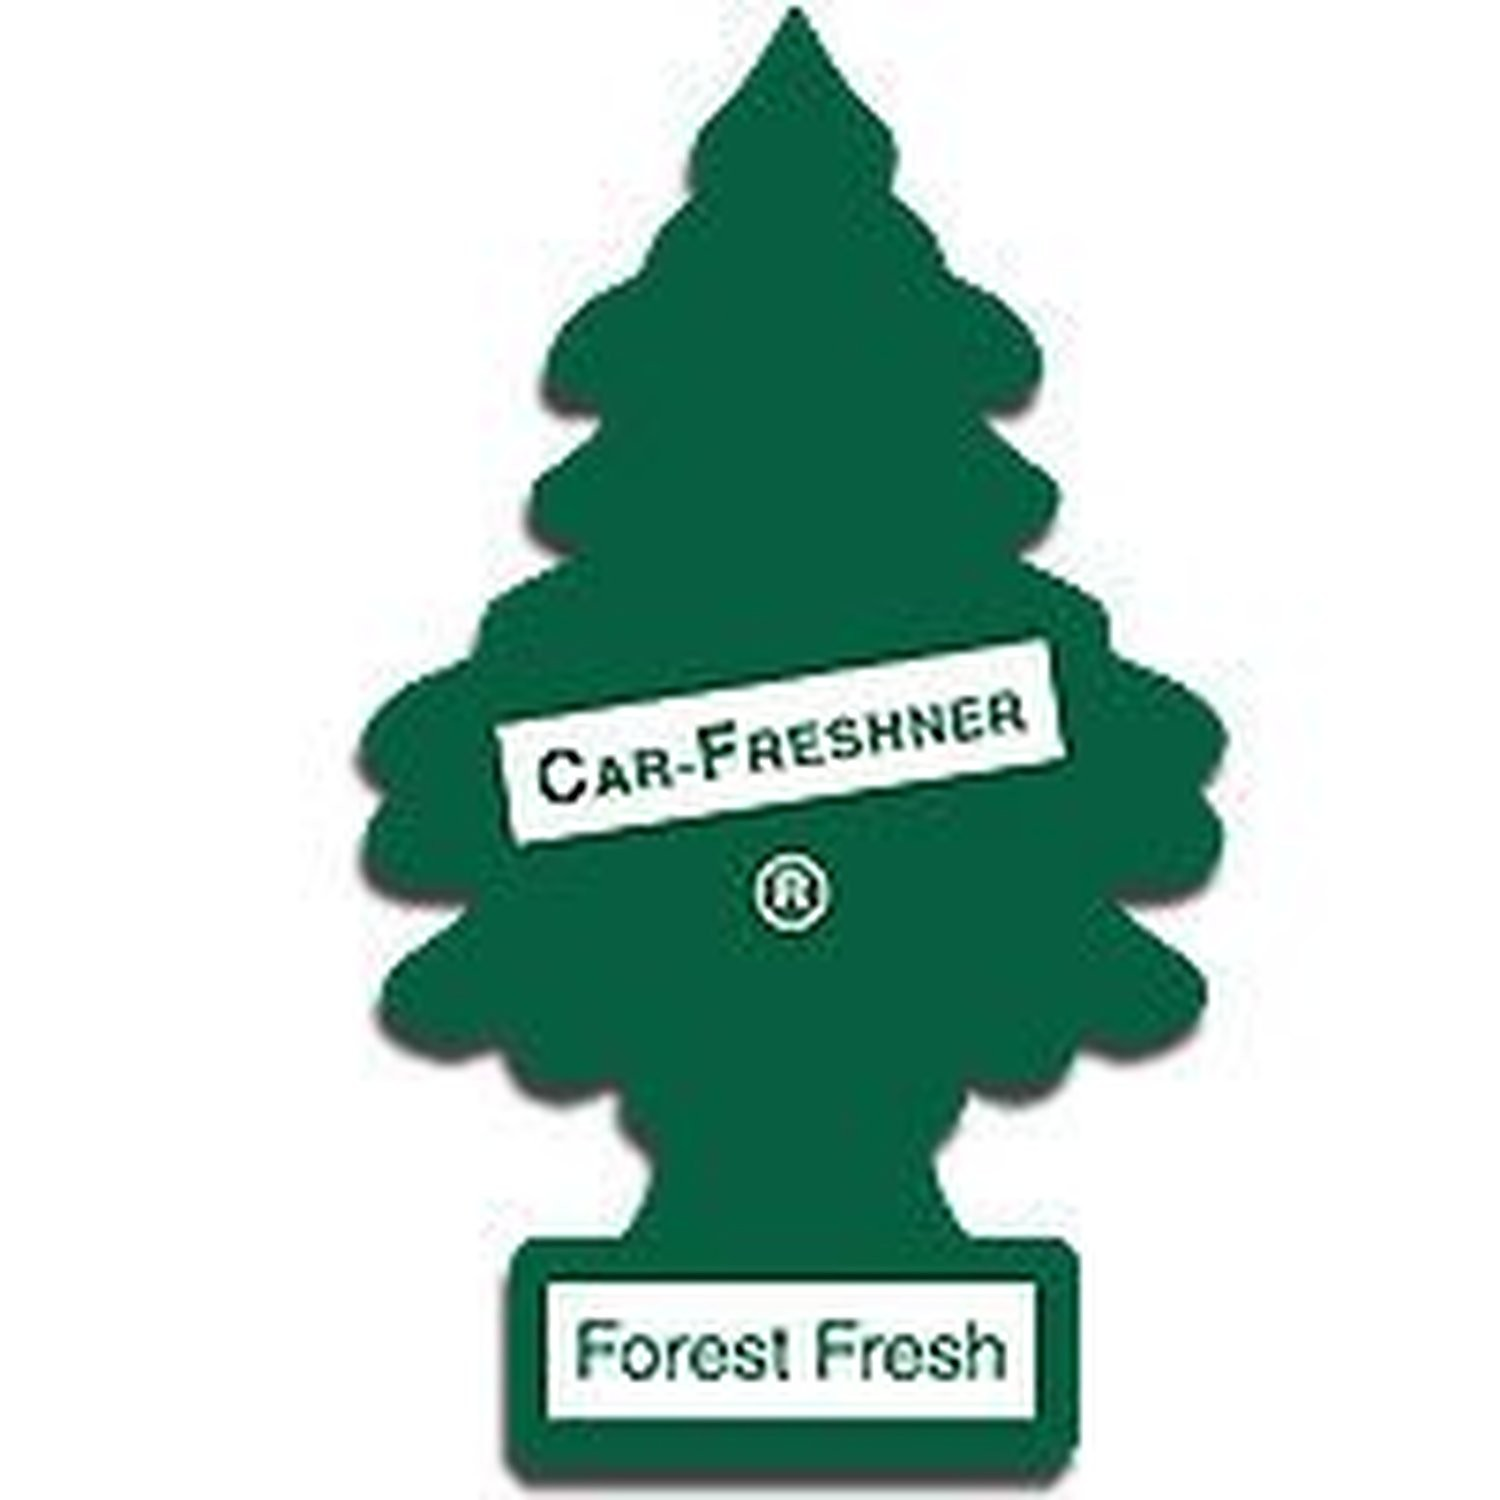 AoE Performance Magic Tree Car Air Freshener Duo Gift Pack Forest Fresh And Passion